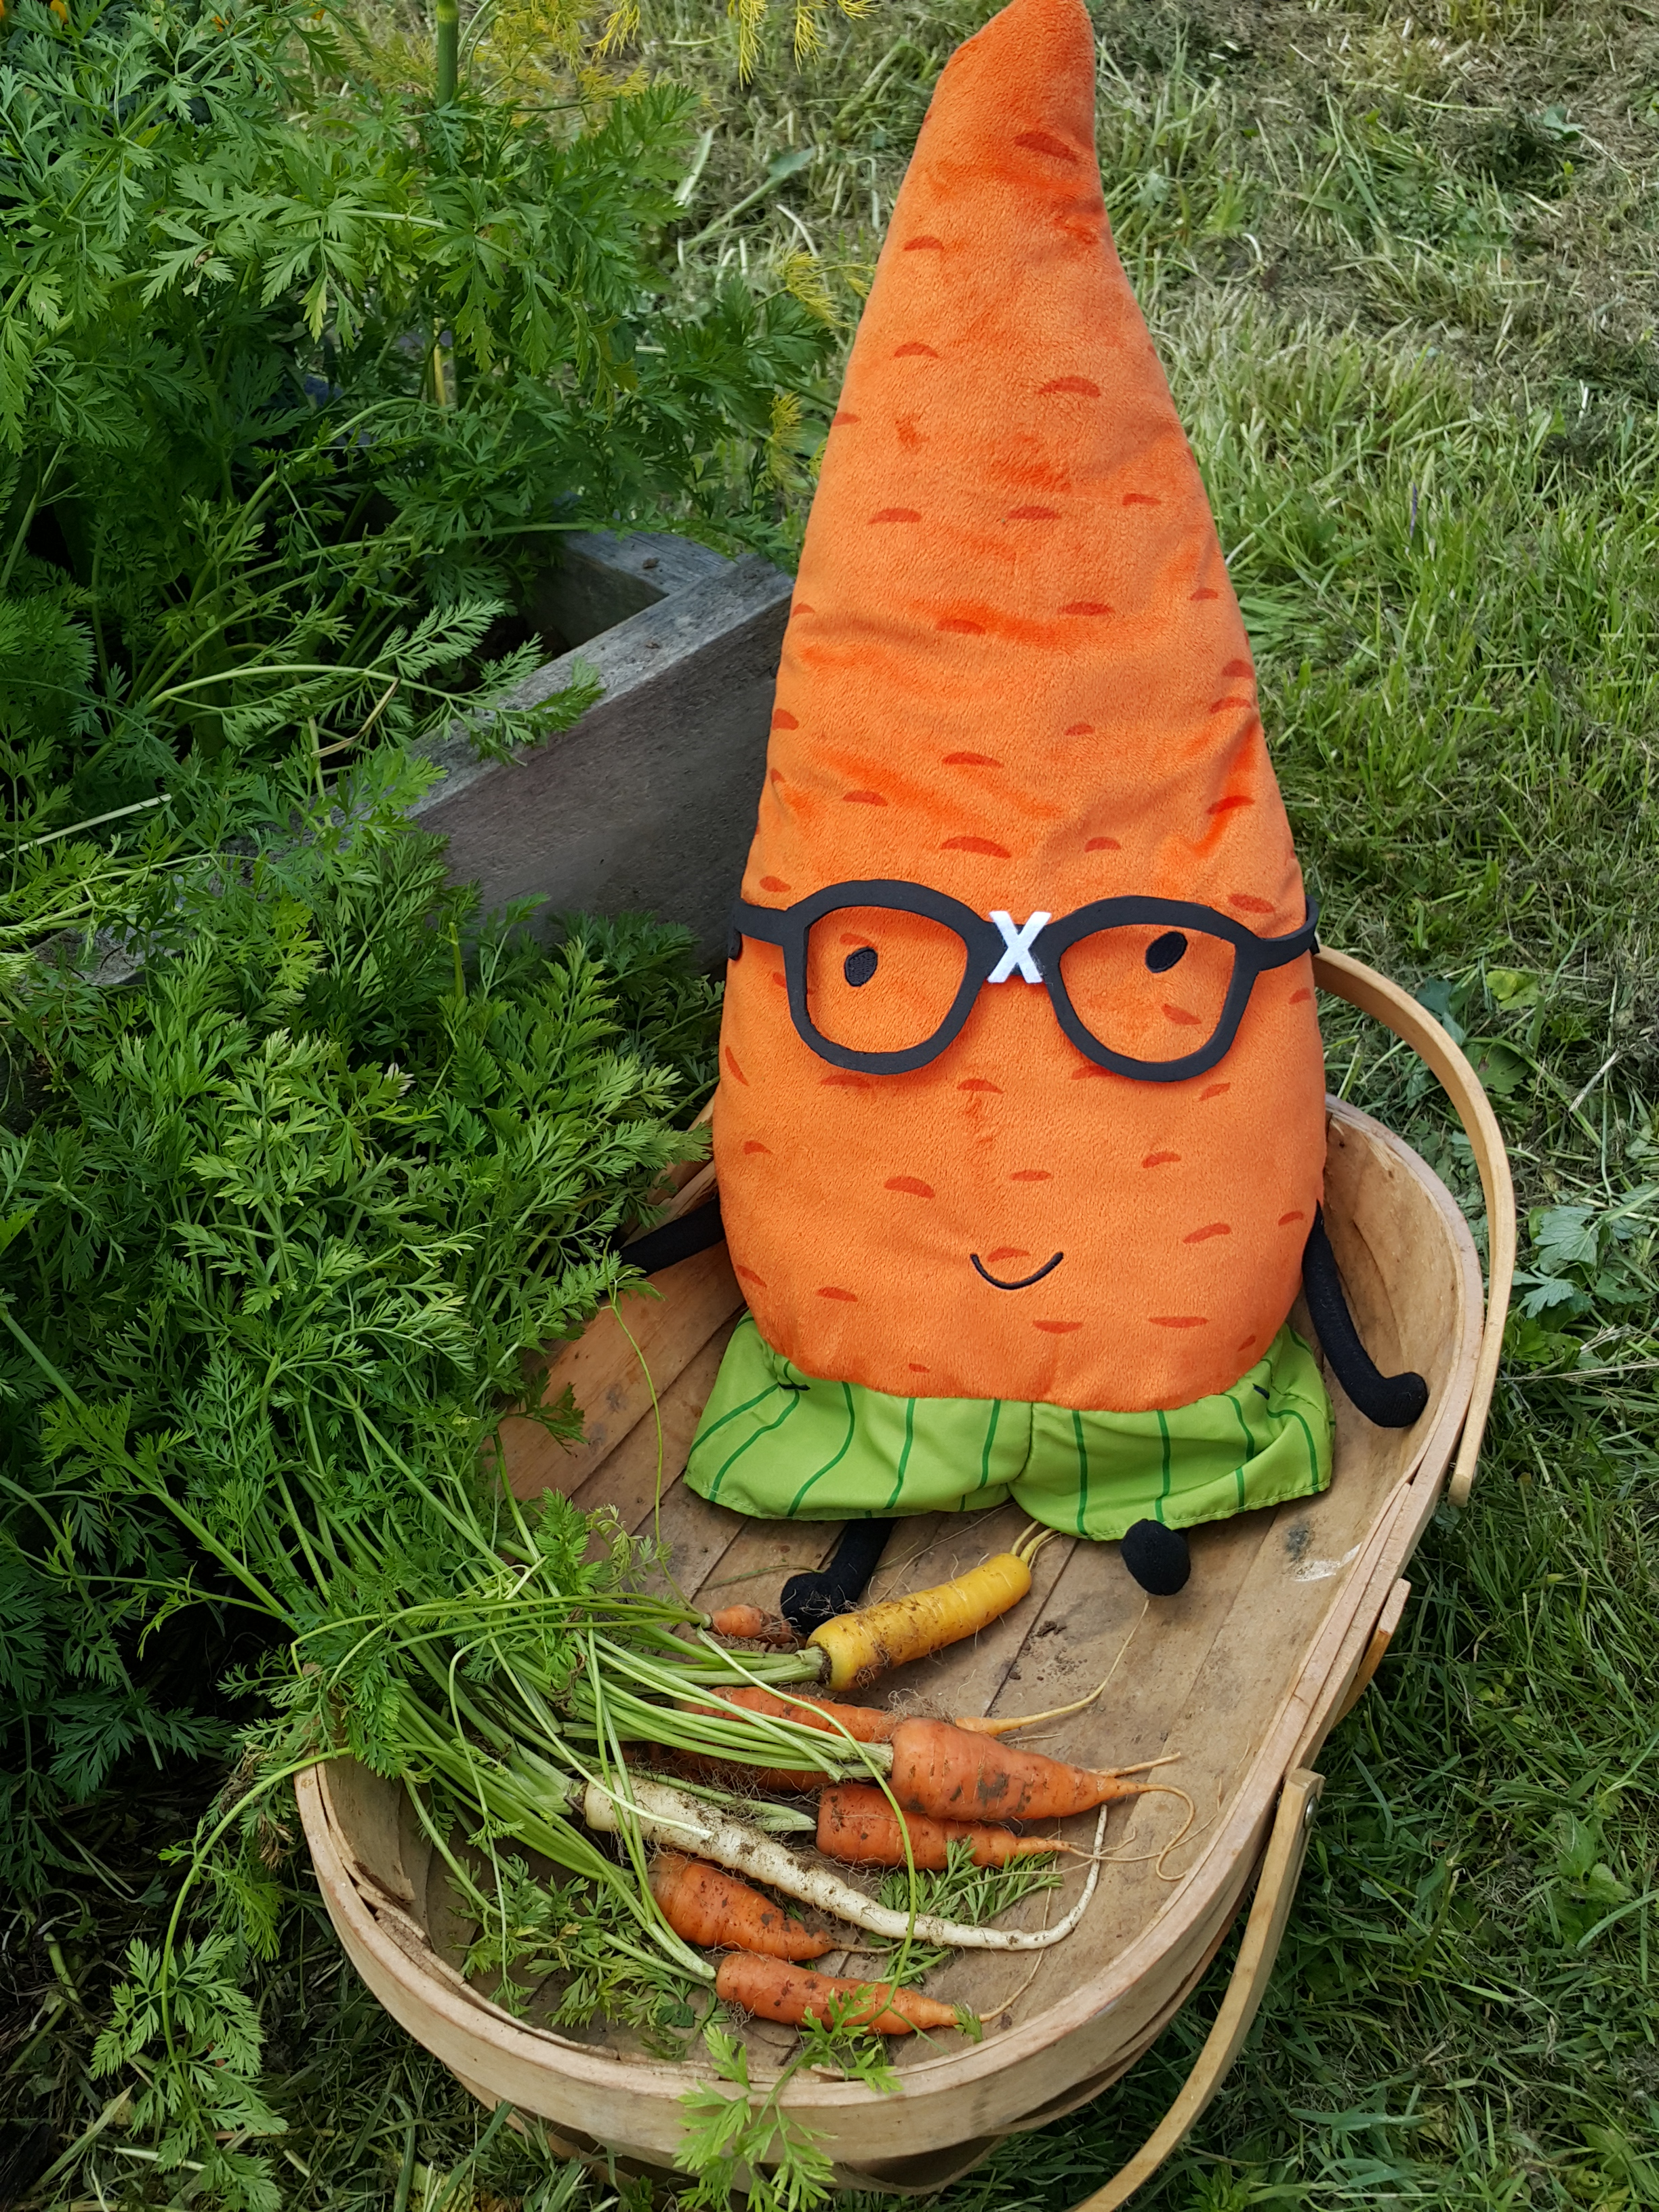 Carrots for the carrot.